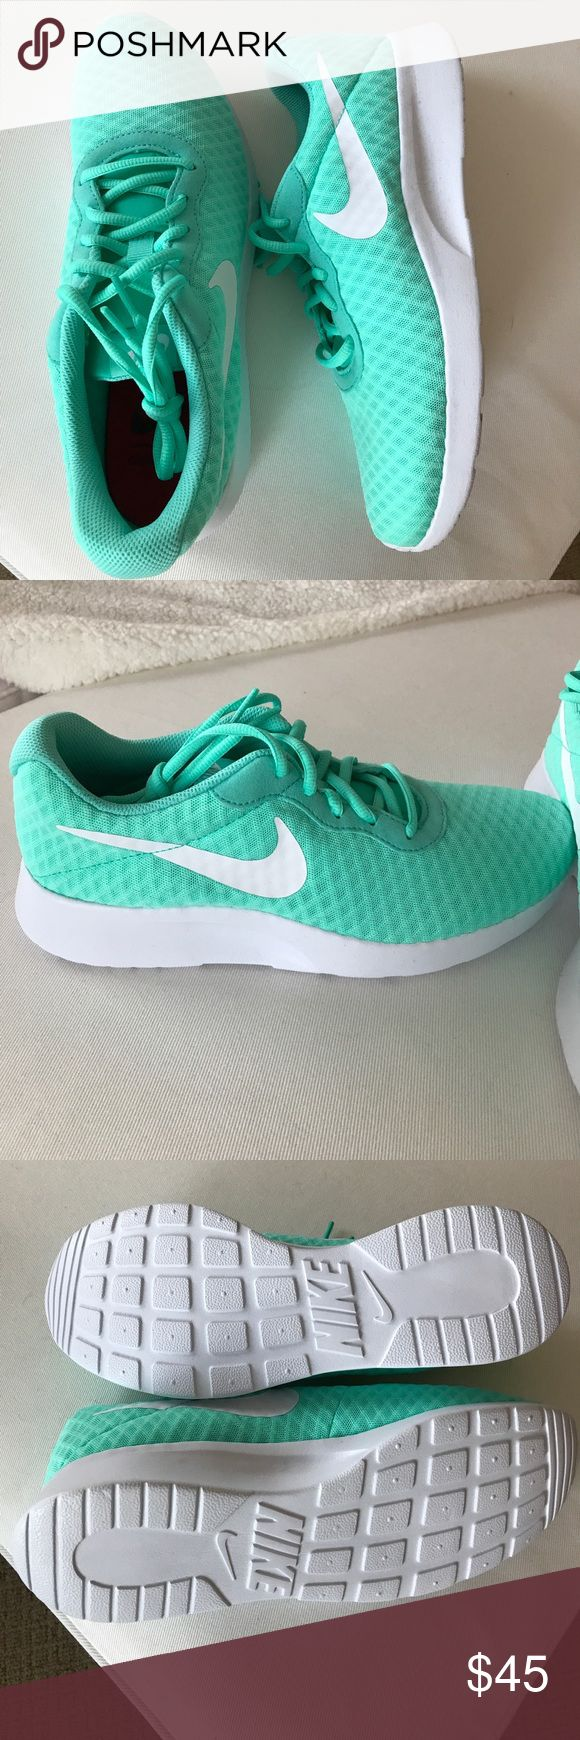 Nike Tanjun SE in Hyper Turquoise Brand new. Never worn. Amazing color for spring!! Original box is not included. Nike Shoes Athletic Shoes